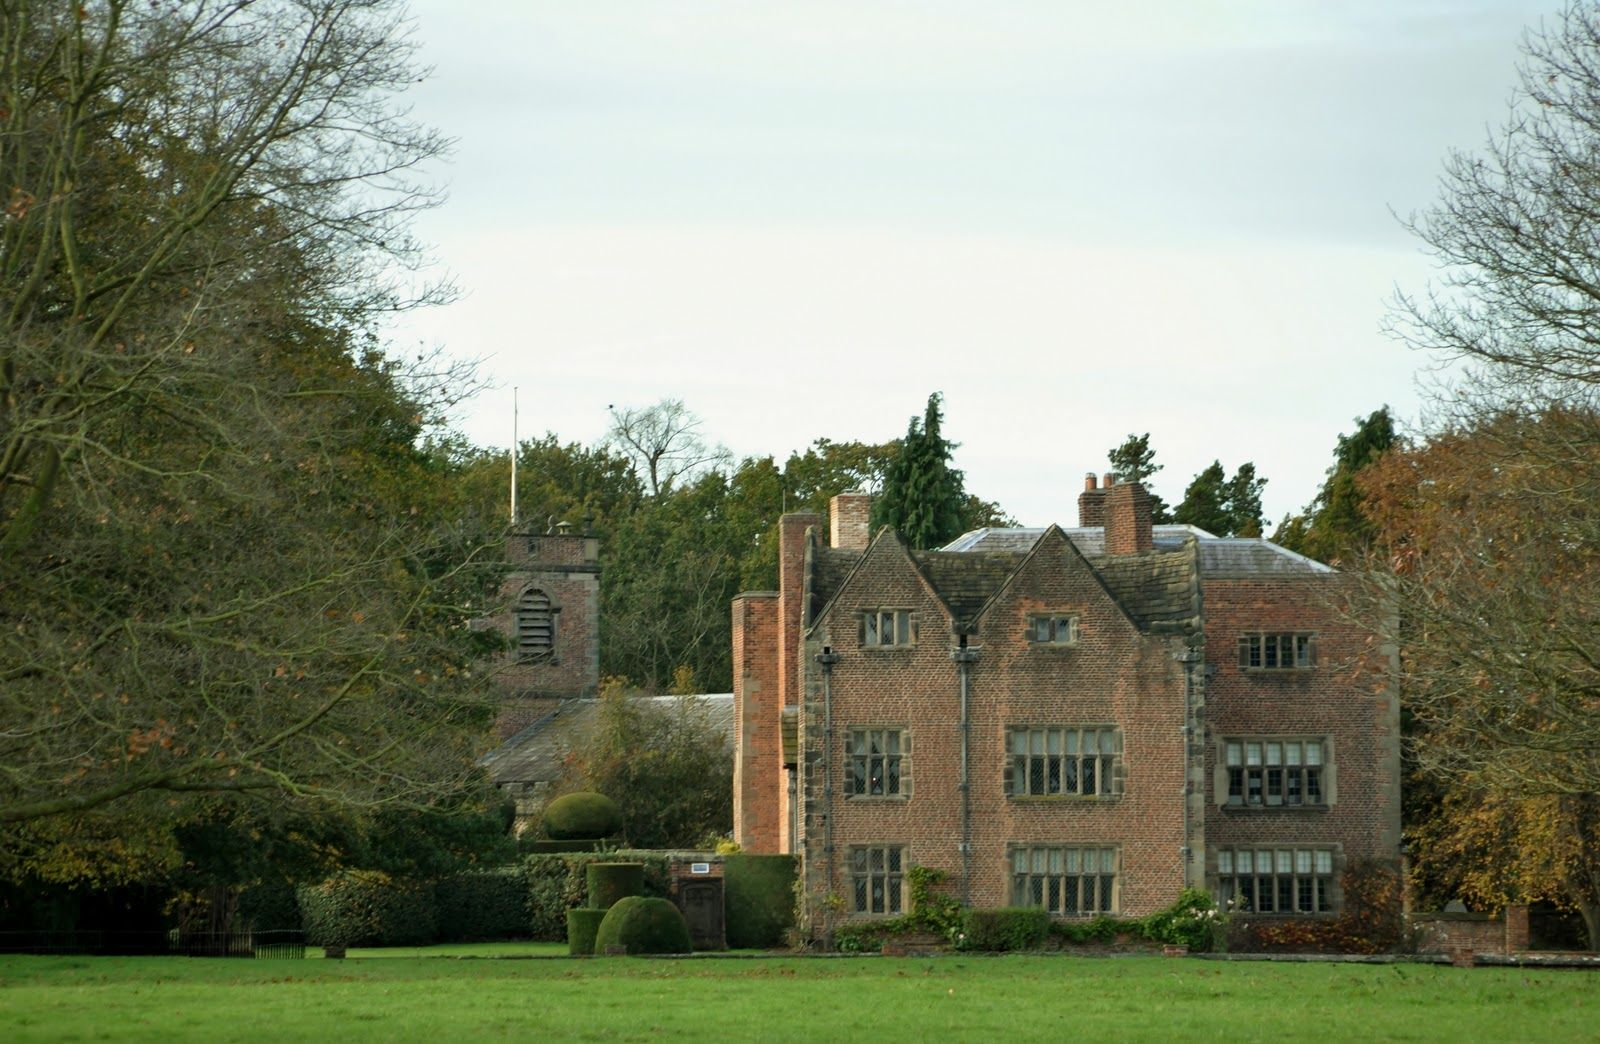 Peover hall peover hall is close to the radio telescope at jodrell